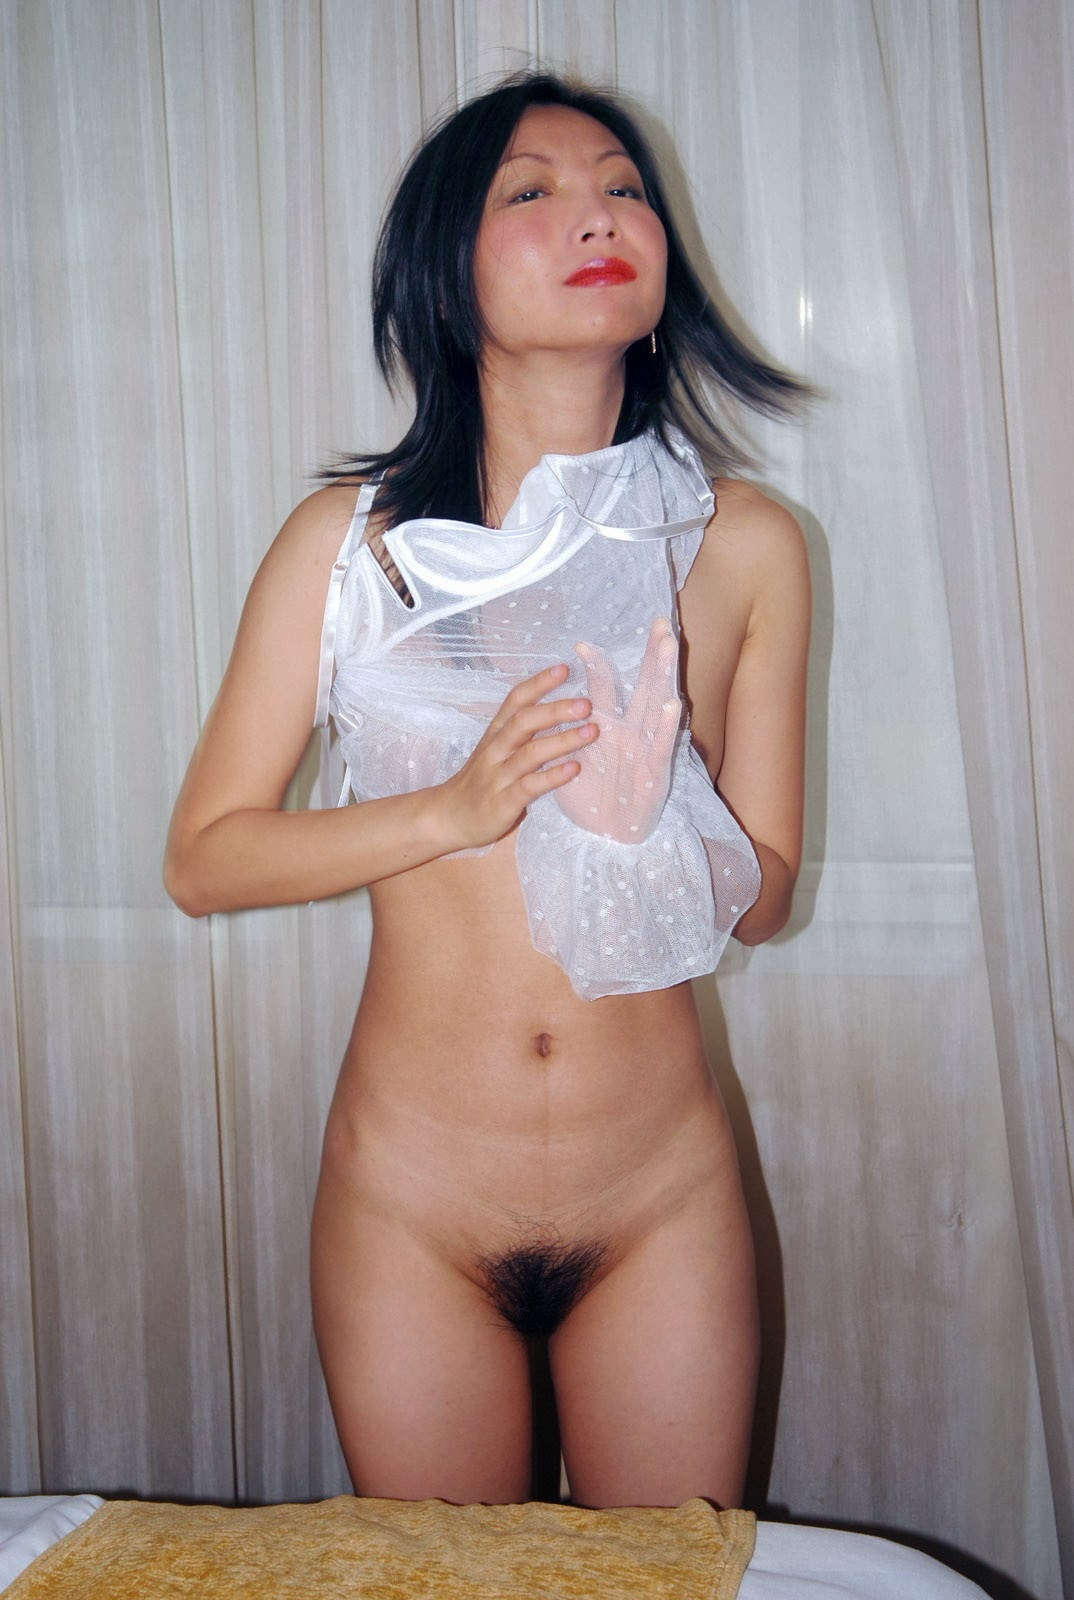 Hairy Taiwanese Model Girl Nude Leaked Scandal Photos 2014